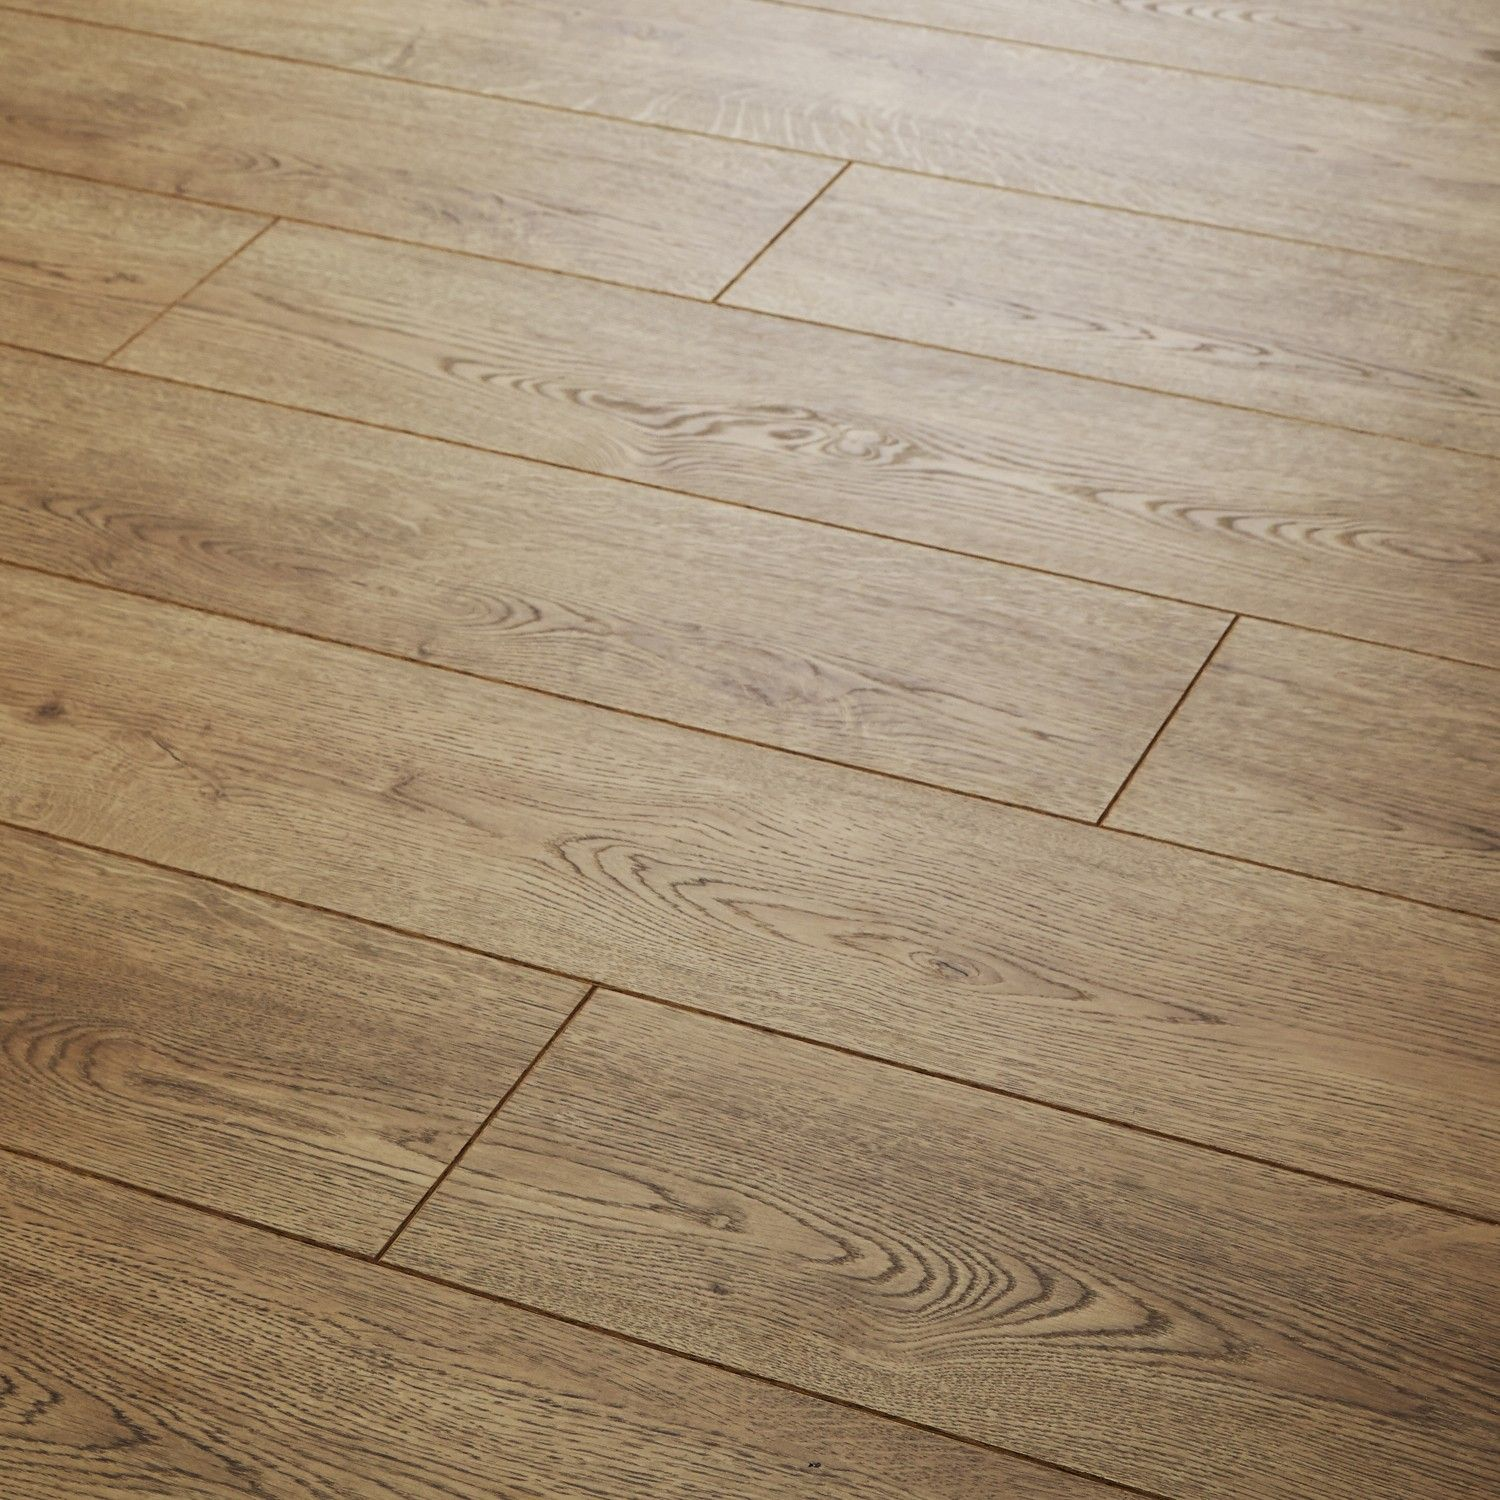 Quattro 8 Abbey Oak Laminate Flooring House Ideas